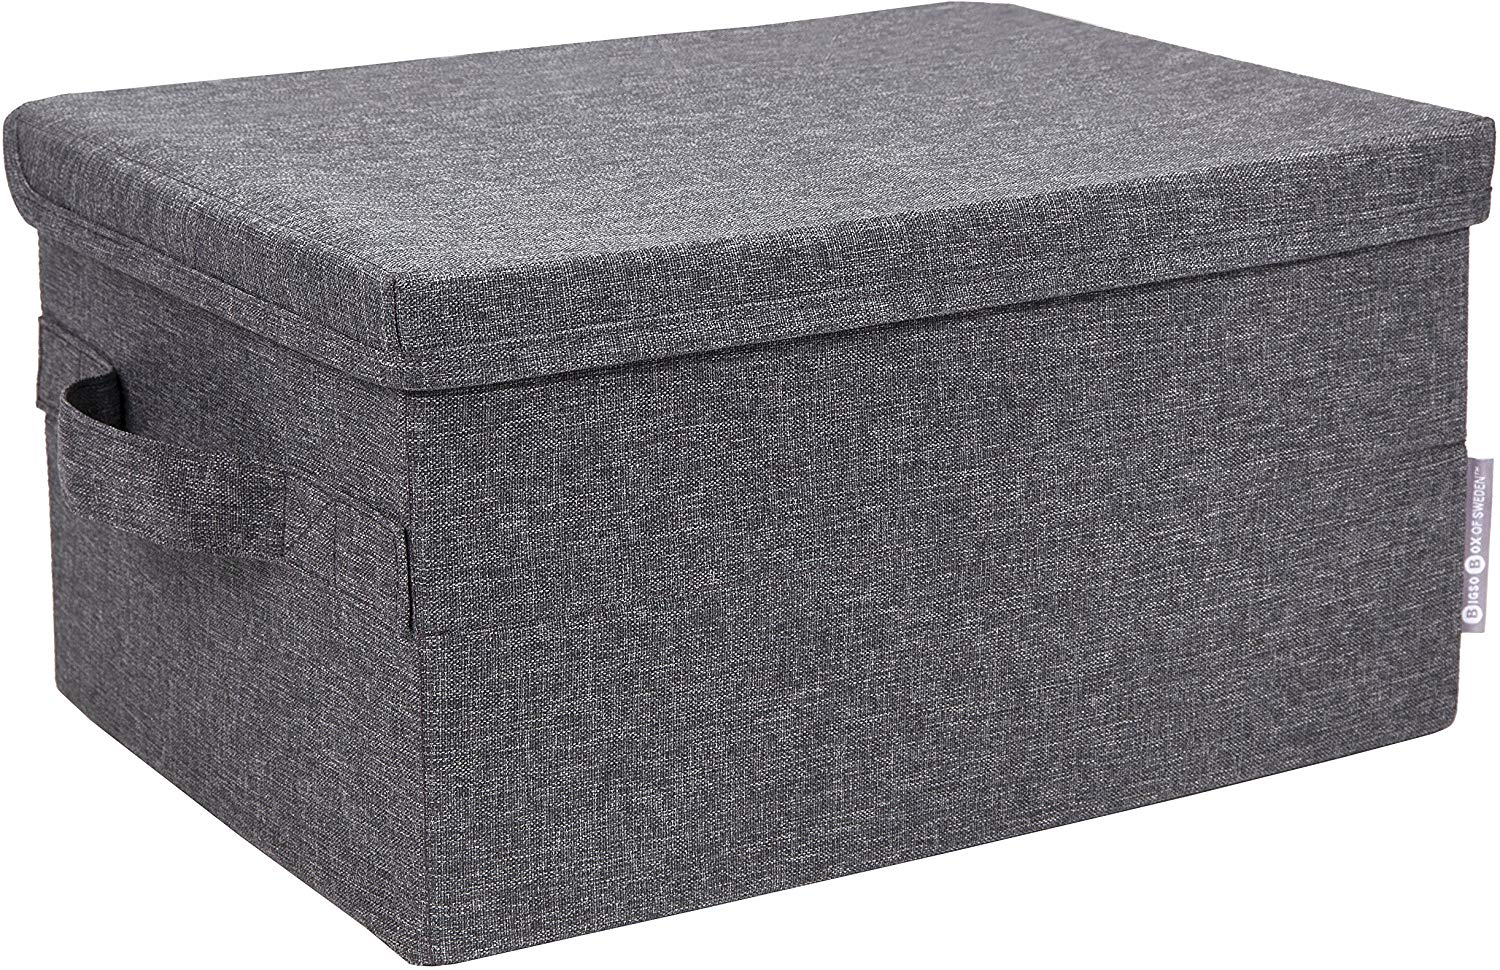 Bigso Small Gray 10.75 Inch x 14.5 Inch Soft Storage Box